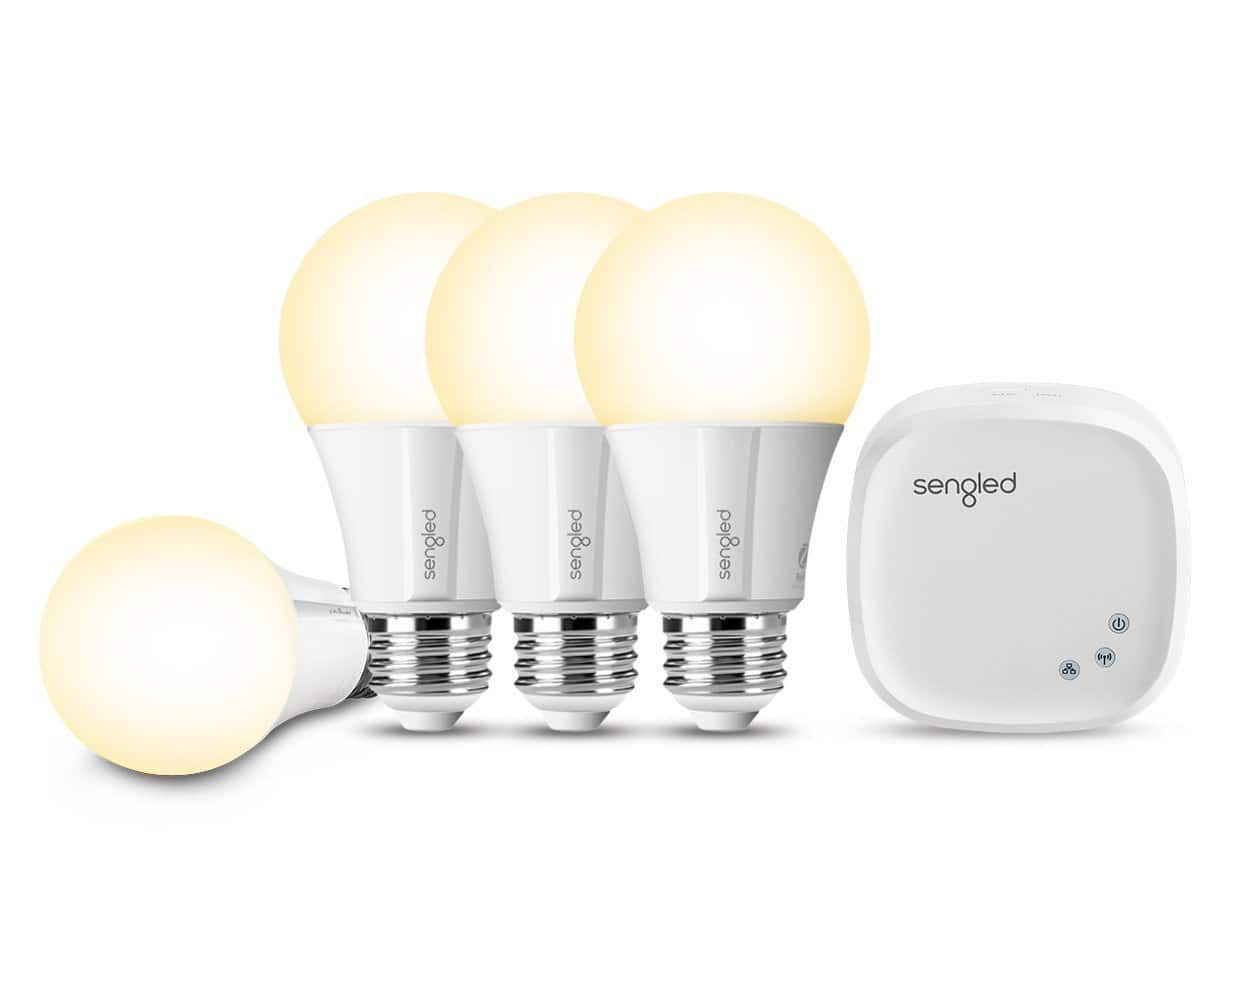 Sengled Element Classic A19 Starter Kit (4 Bulbs + Hub) - 60W Soft White Smart LED Bulbs (2700K) $41.24 @ Amazon